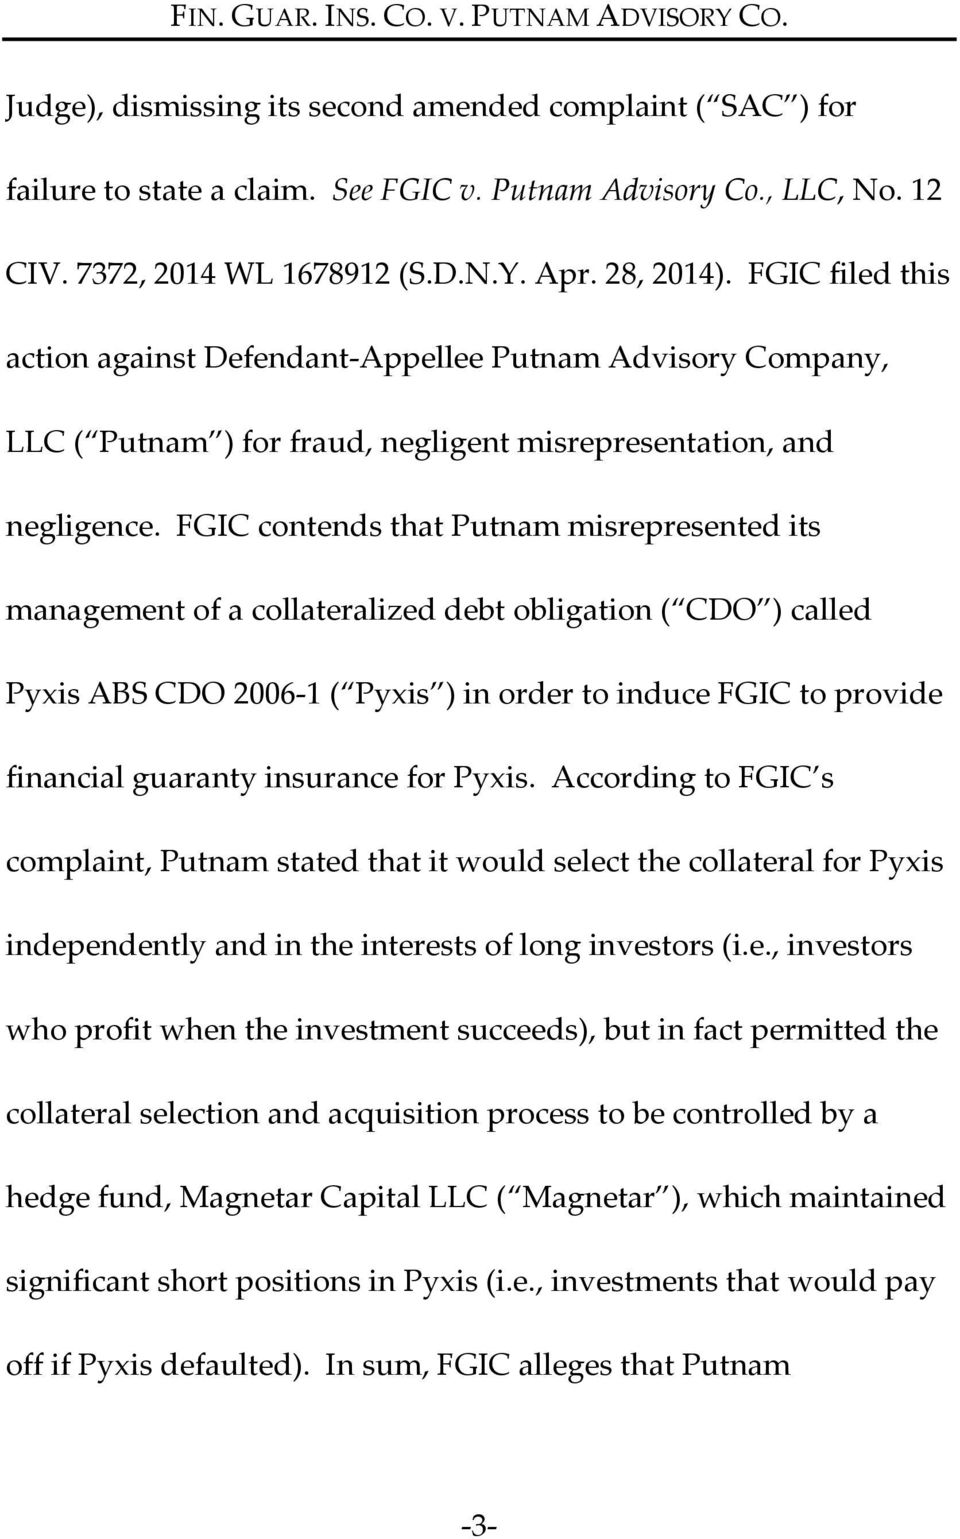 FGIC contends that Putnam misrepresented its management of a collateralized debt obligation ( CDO ) called Pyxis ABS CDO 2006 1 ( Pyxis ) in order to induce FGIC to provide financial guaranty